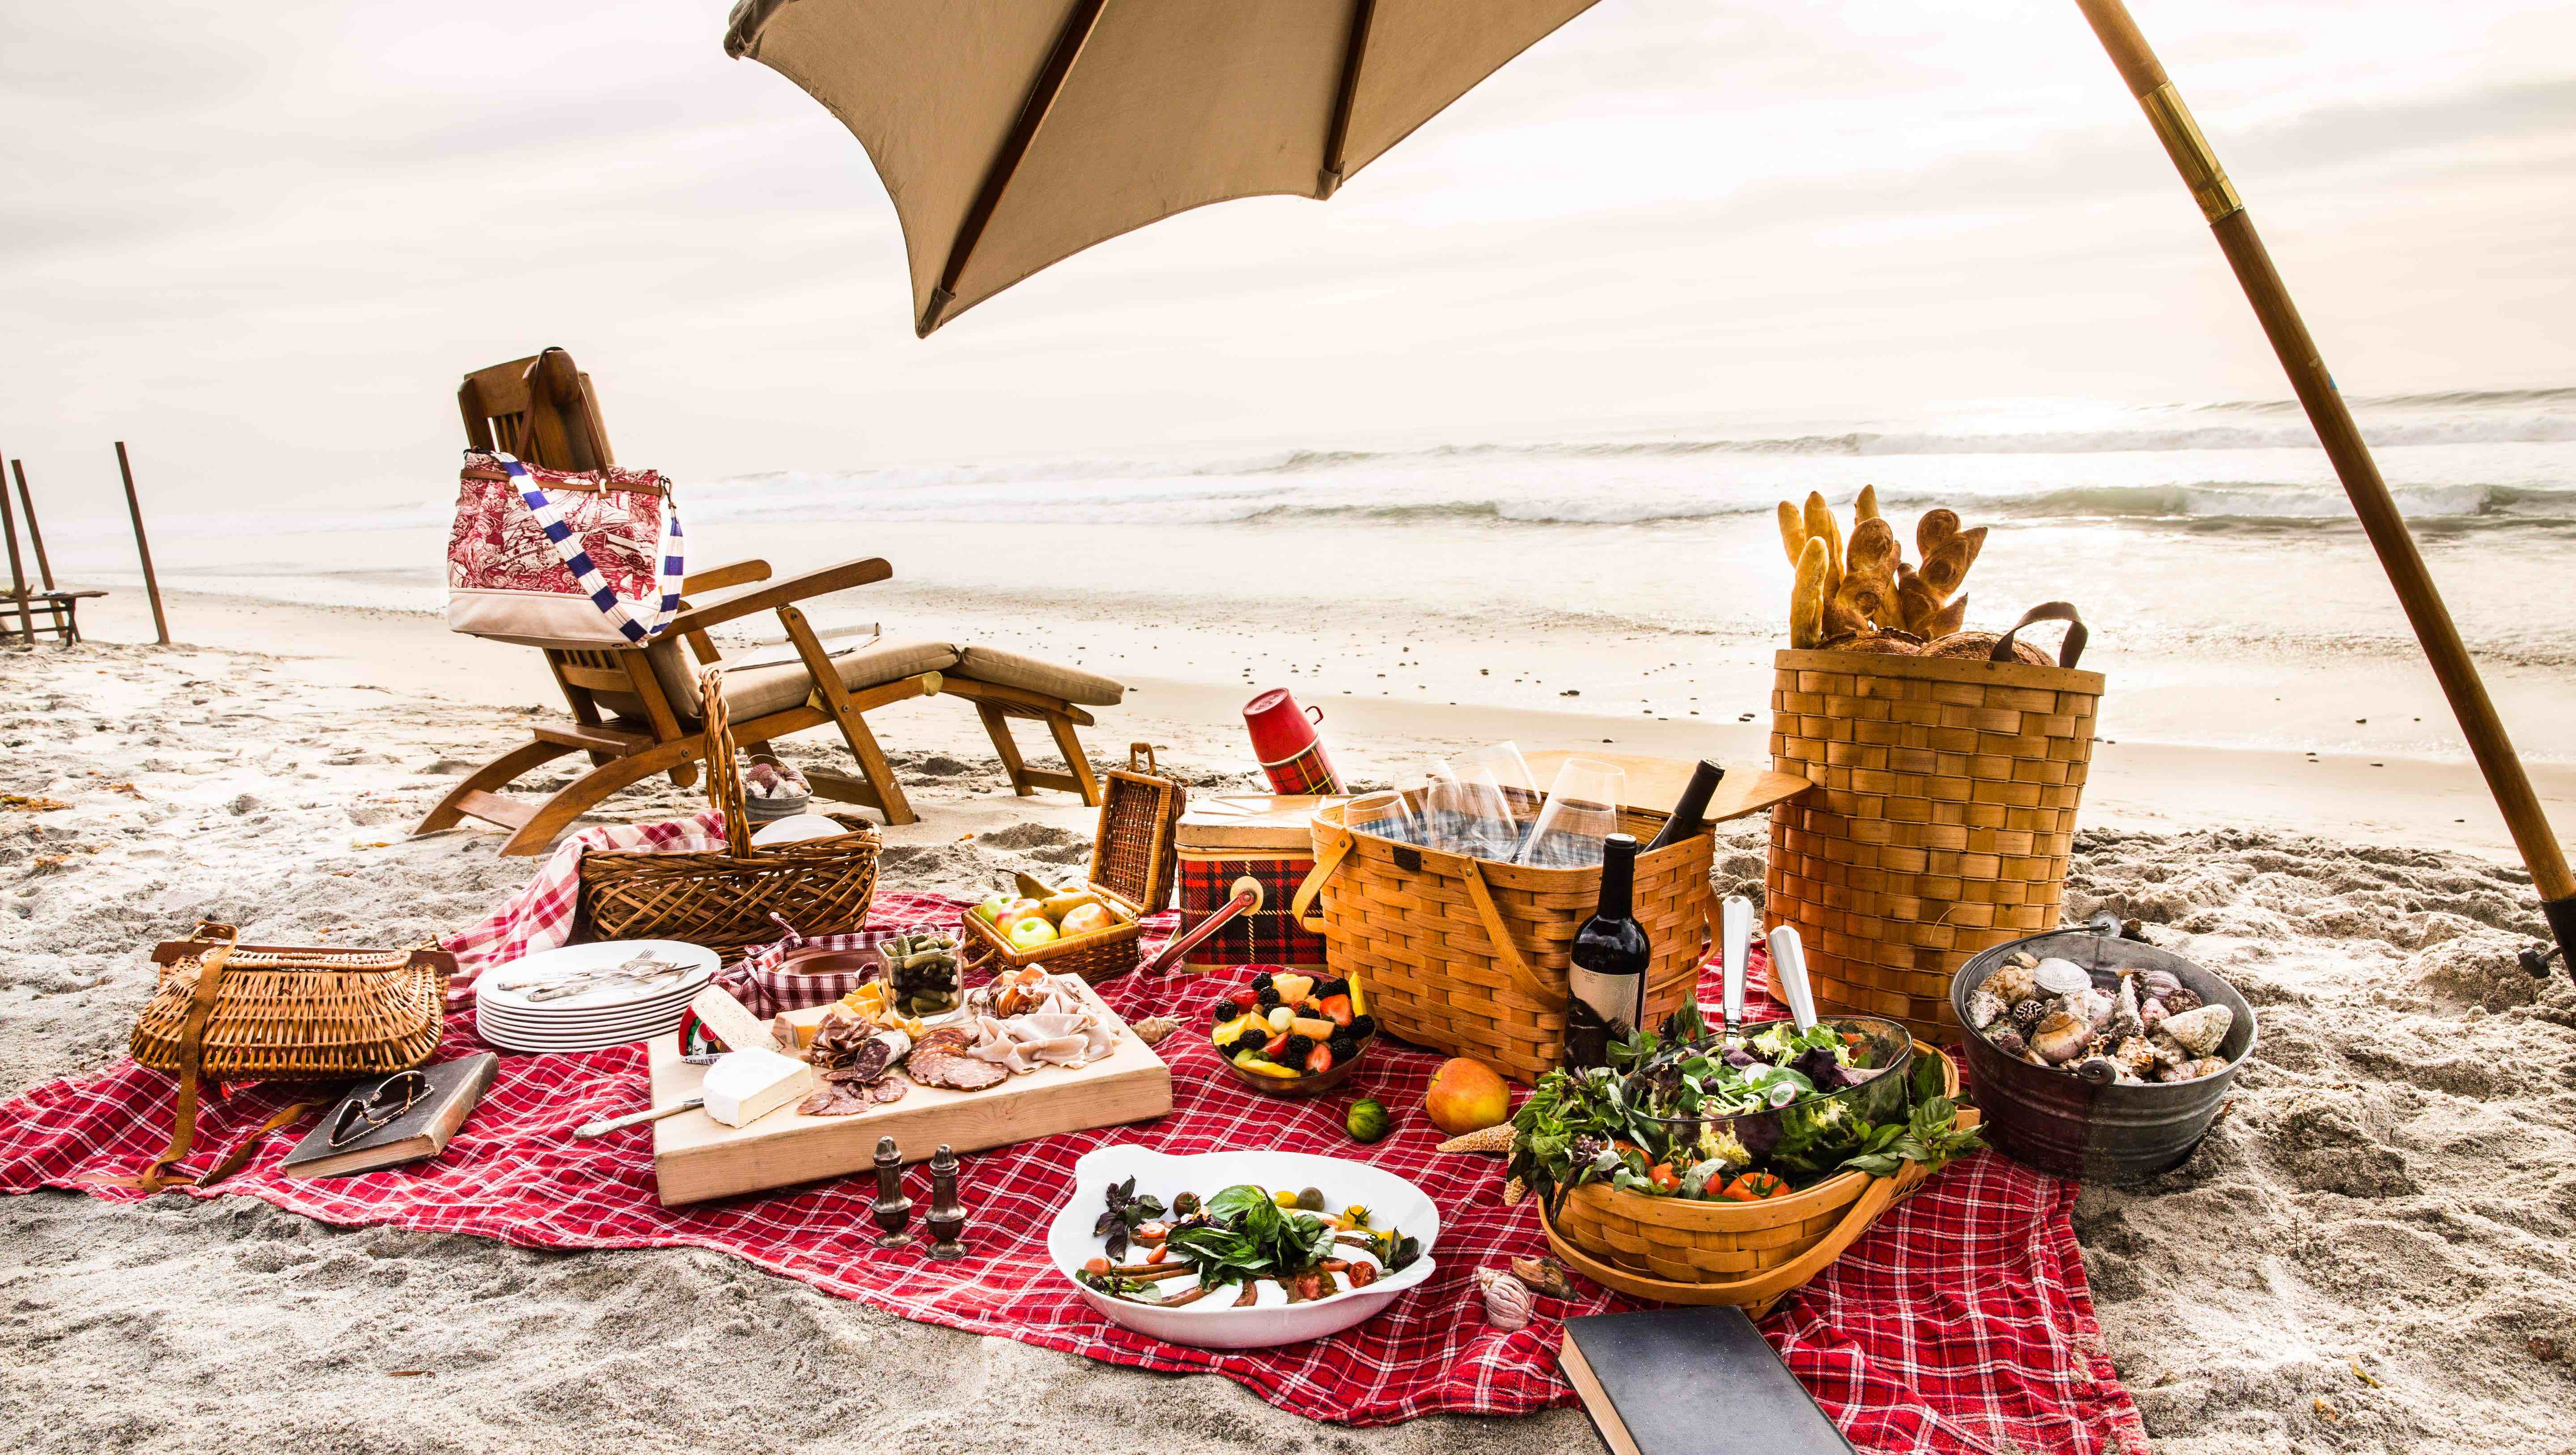 What to do at the beach if you don't like it faviana make a picnic